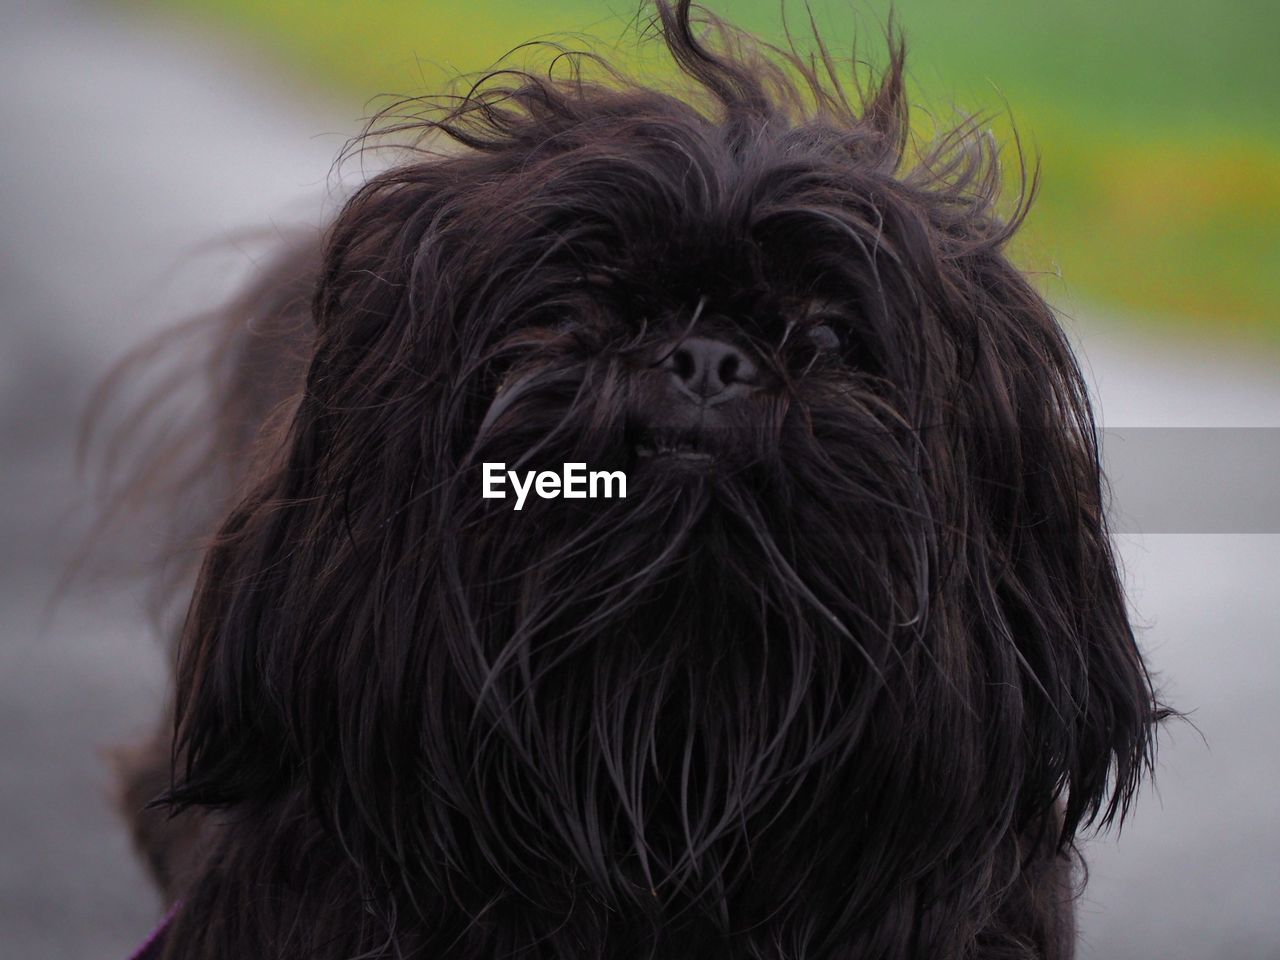 hair, animal hair, dog, one animal, canine, vertebrate, mammal, domestic, close-up, focus on foreground, domestic animals, pets, portrait, lap dog, black color, people, animal body part, small, hairstyle, shih tzu